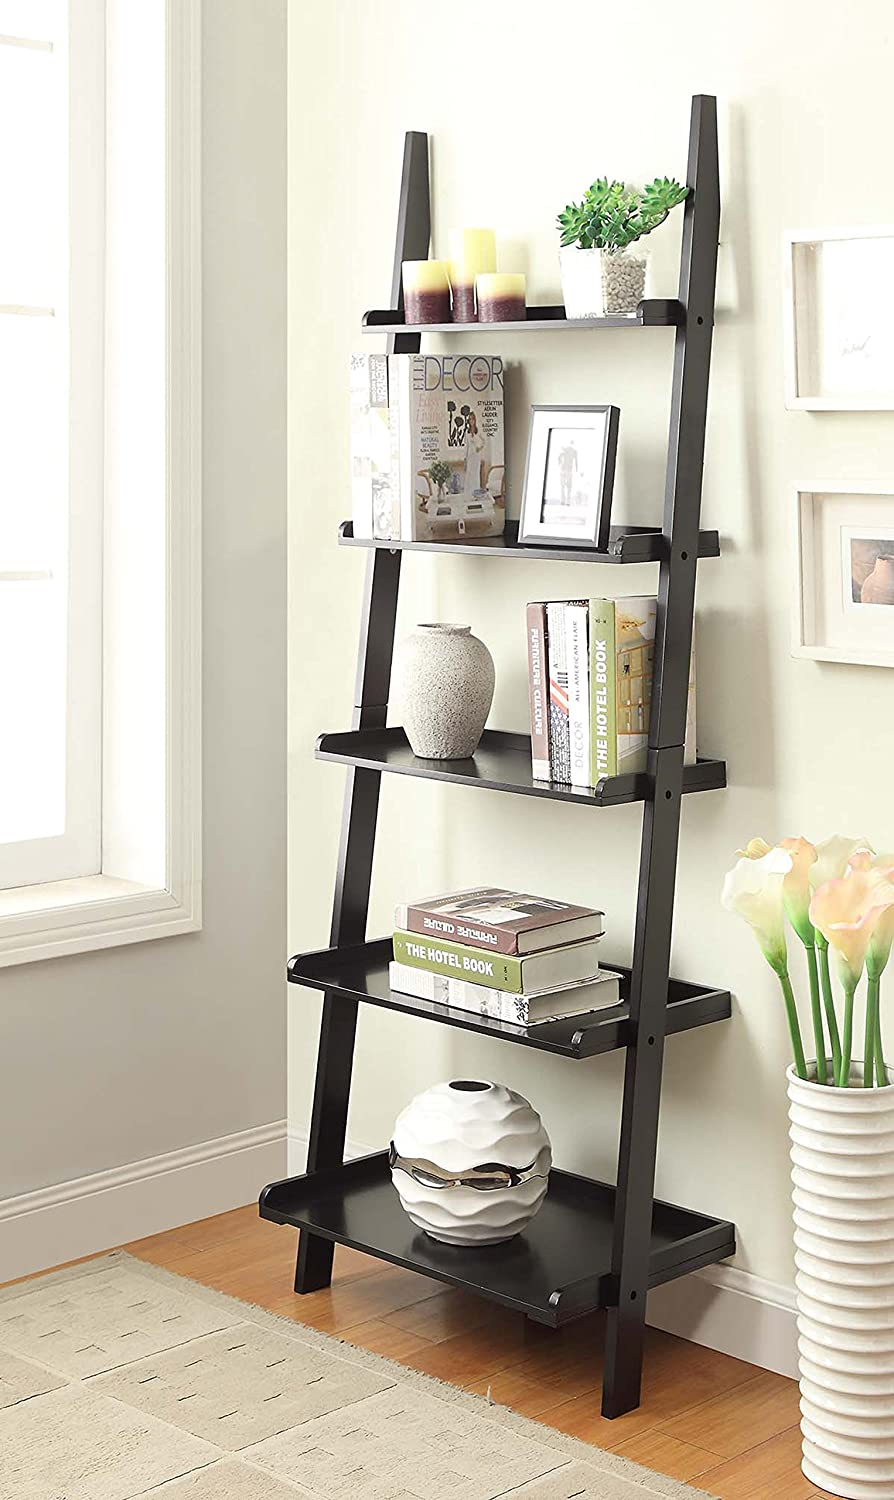 Amazon.com: Convenience Concepts American Heritage Bookshelf Ladder, Black:  Kitchen & Dining